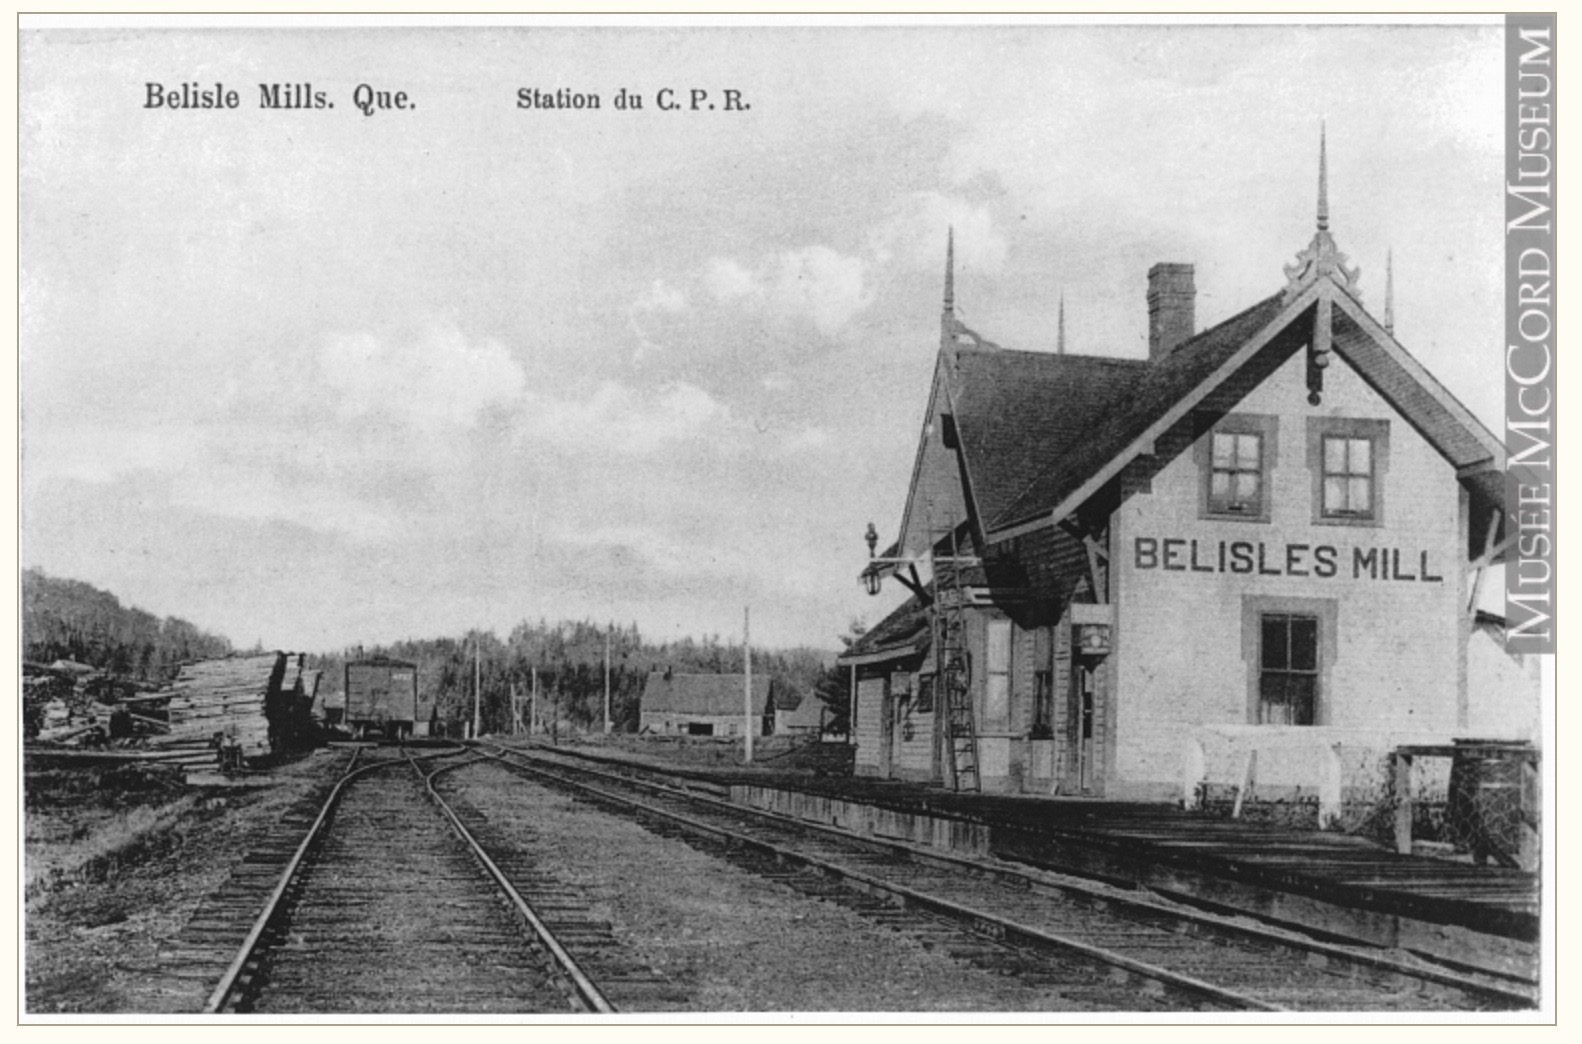 Vintage postcard showing the Bélisle's Mills Railway Station; apart from the building, the railway tracks can be seen and stacks of wood ready for loading.